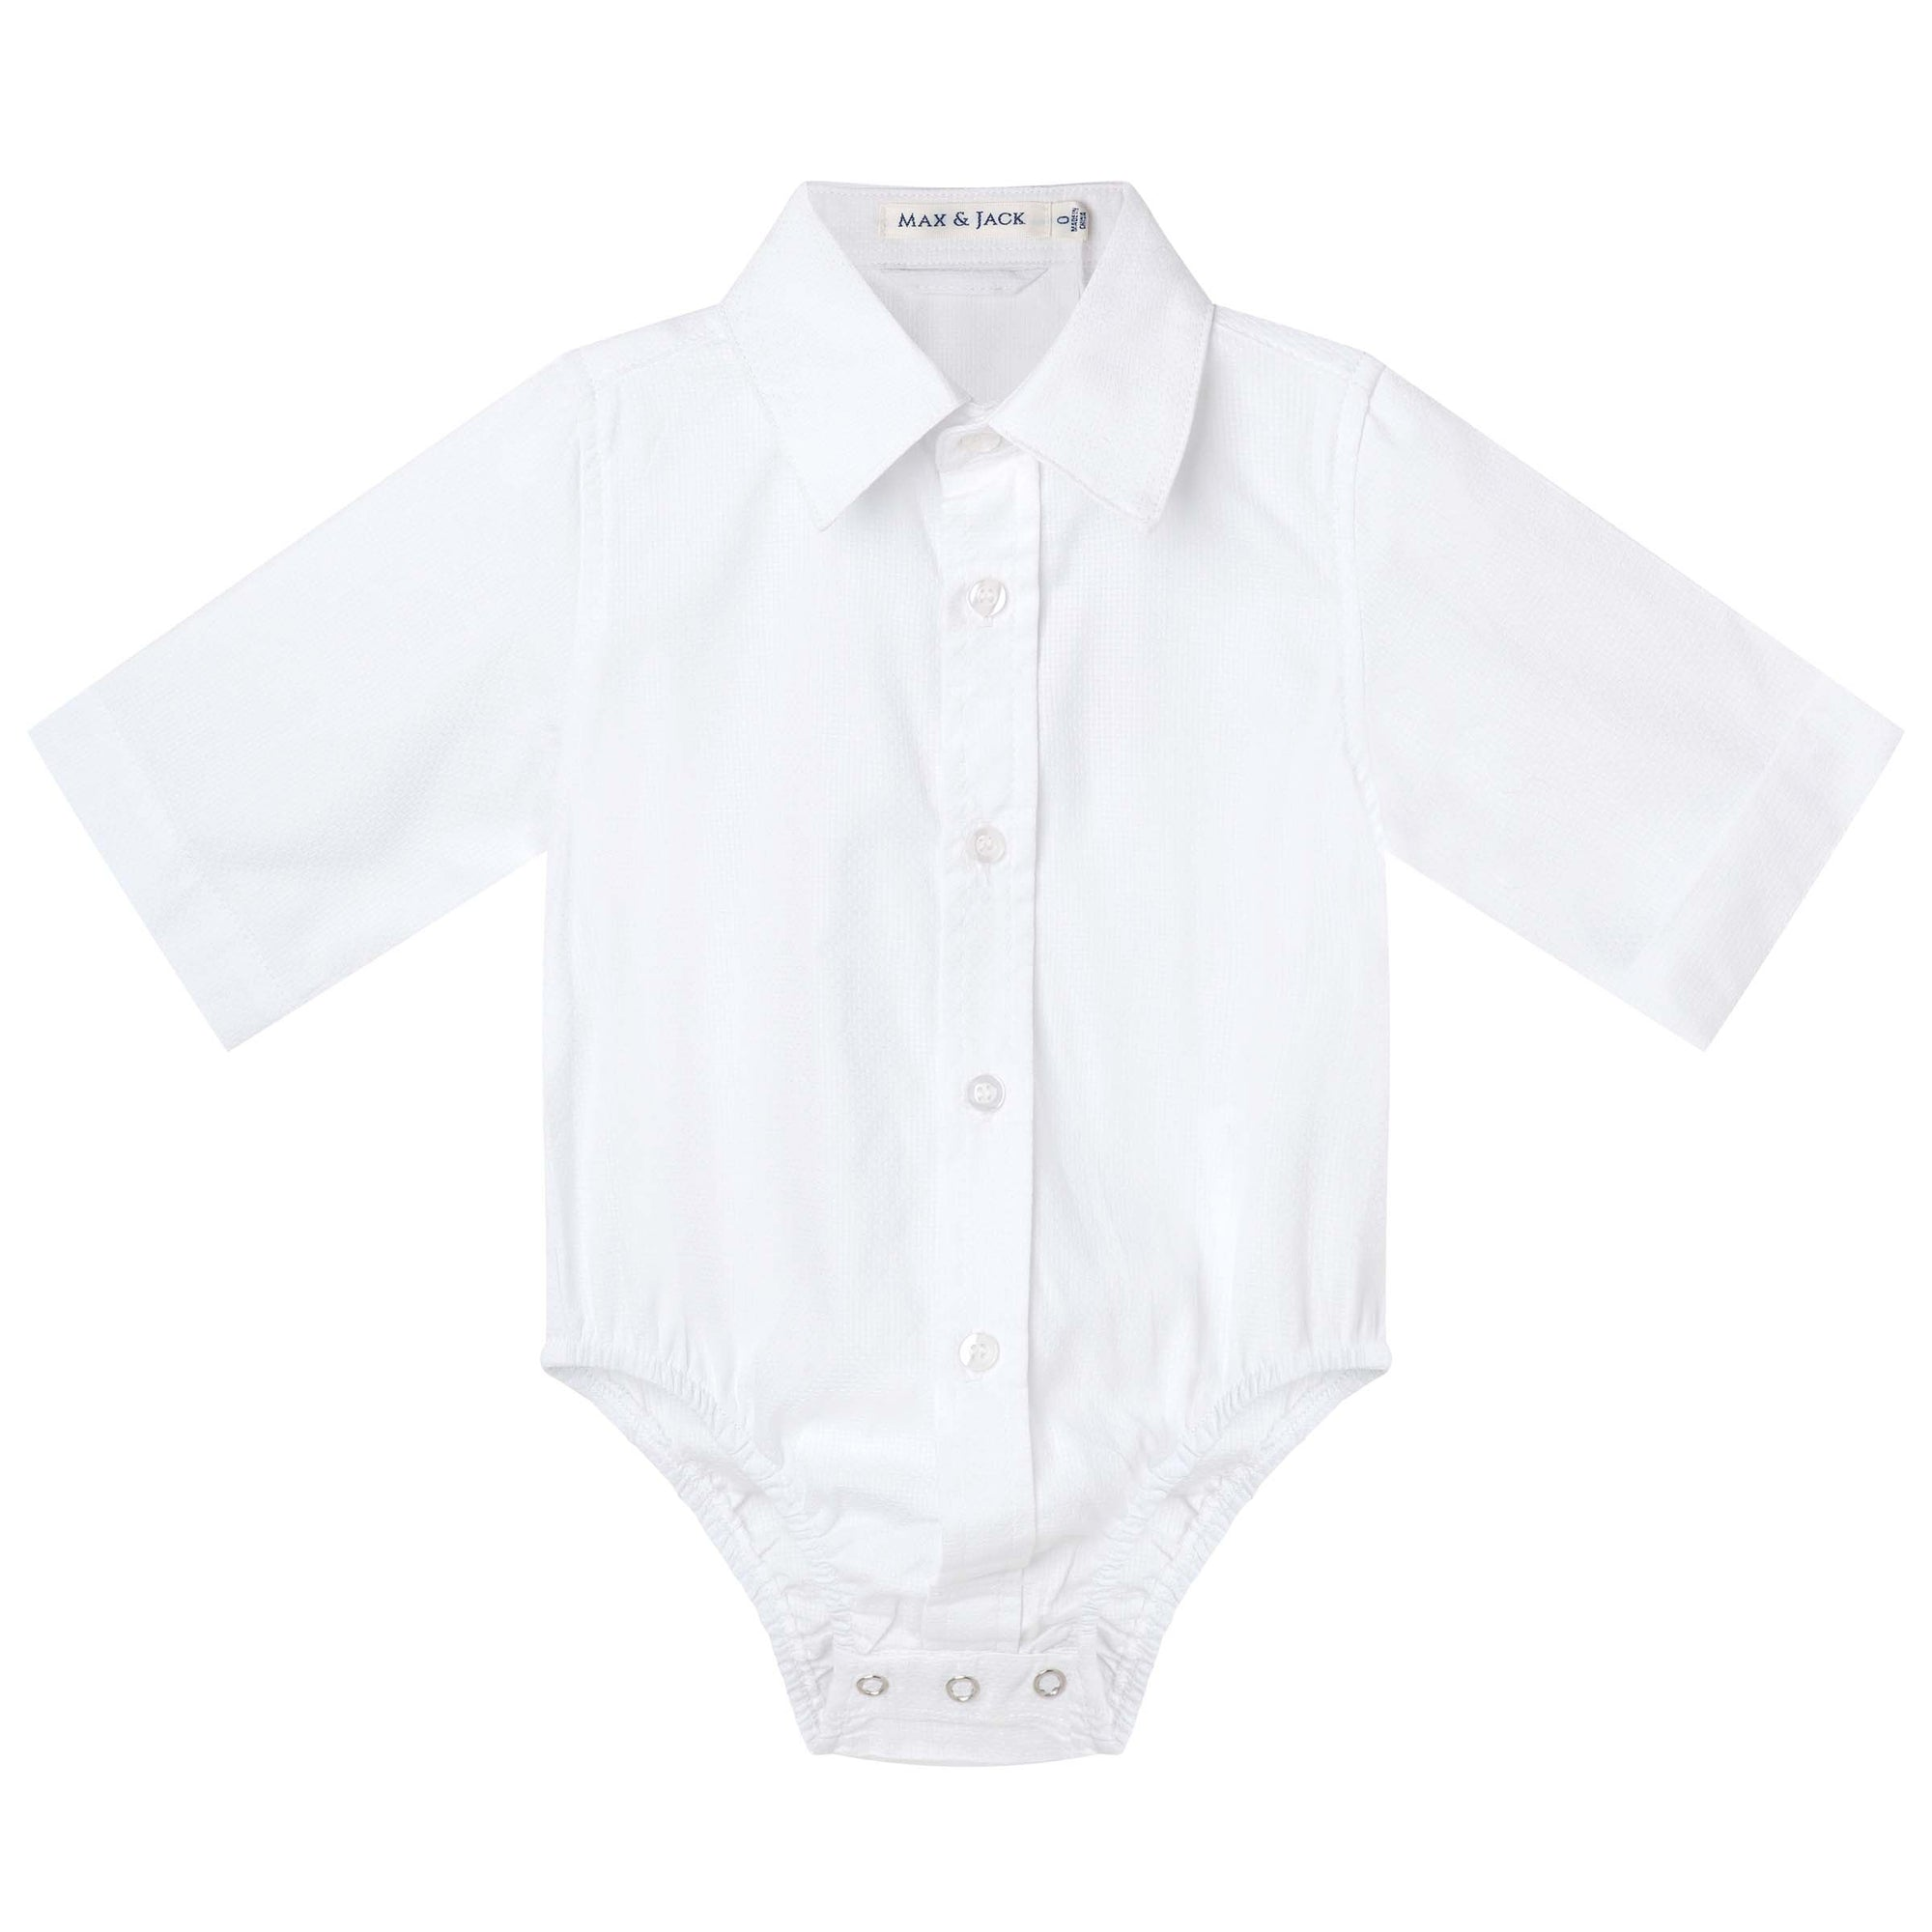 Buy Jackson Formal Romper/S - White - Designer Kidz | Special Occasions, Party Wear & Weddings  | Sizes 000-16 | Little Girls Party Dresses, Tutu Dresses, Flower Girl Dresses | Pay with Afterpay | Free AU Delivery Over $80